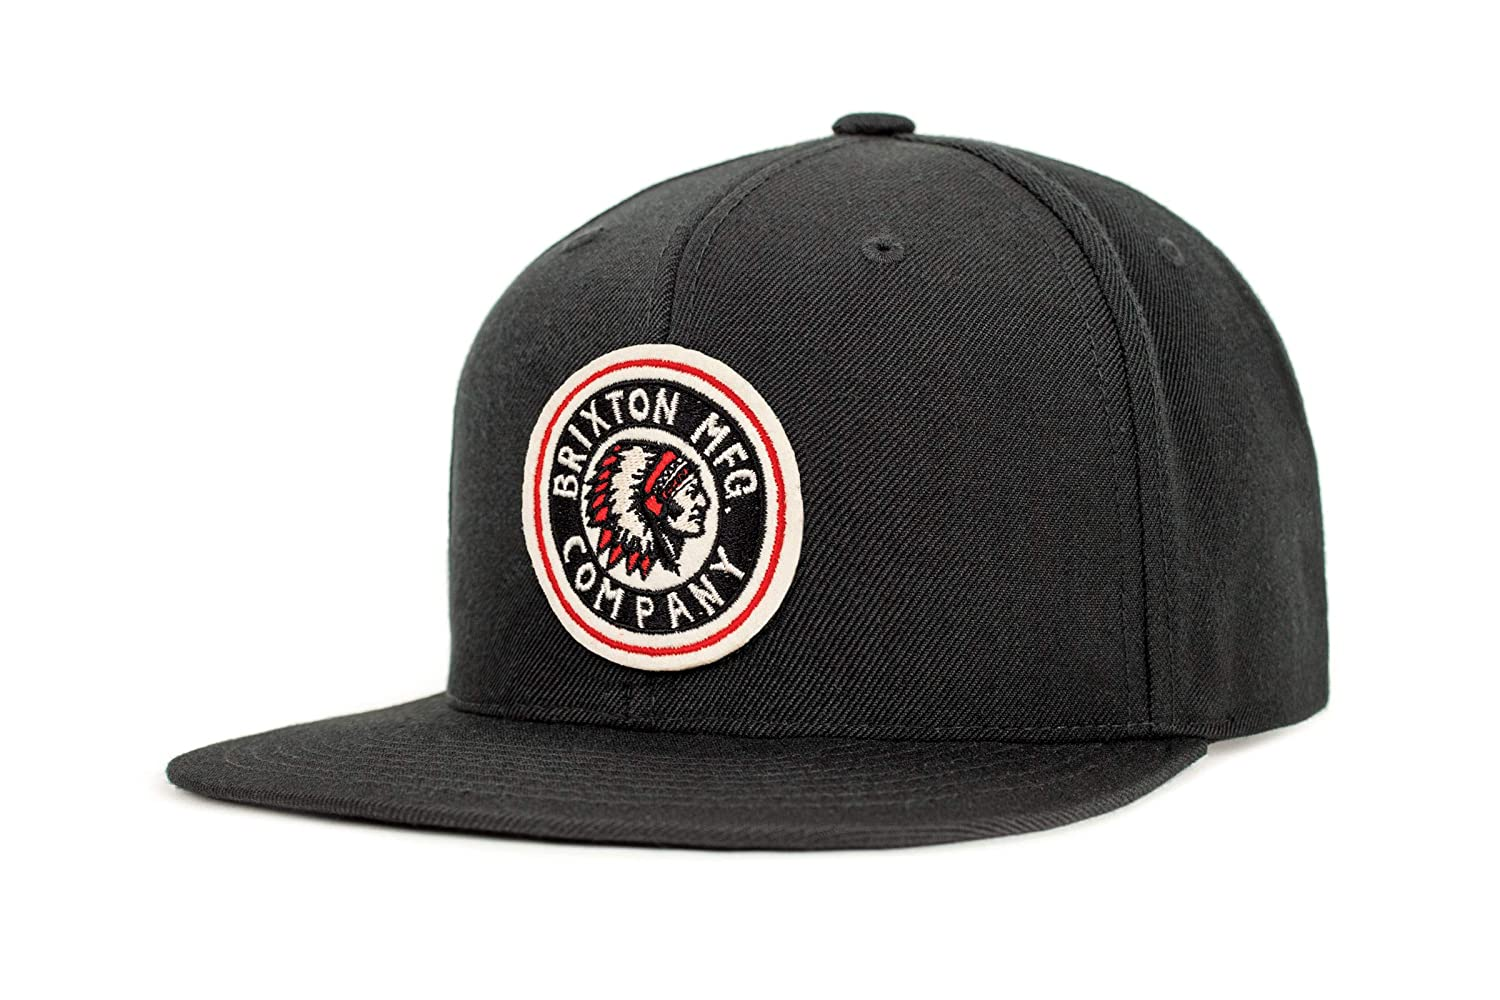 472521c2 Brixton Men's Rival Medium Profile Adjustable Snapback Hat, Black, One  Size: Amazon.ca: Clothing & Accessories